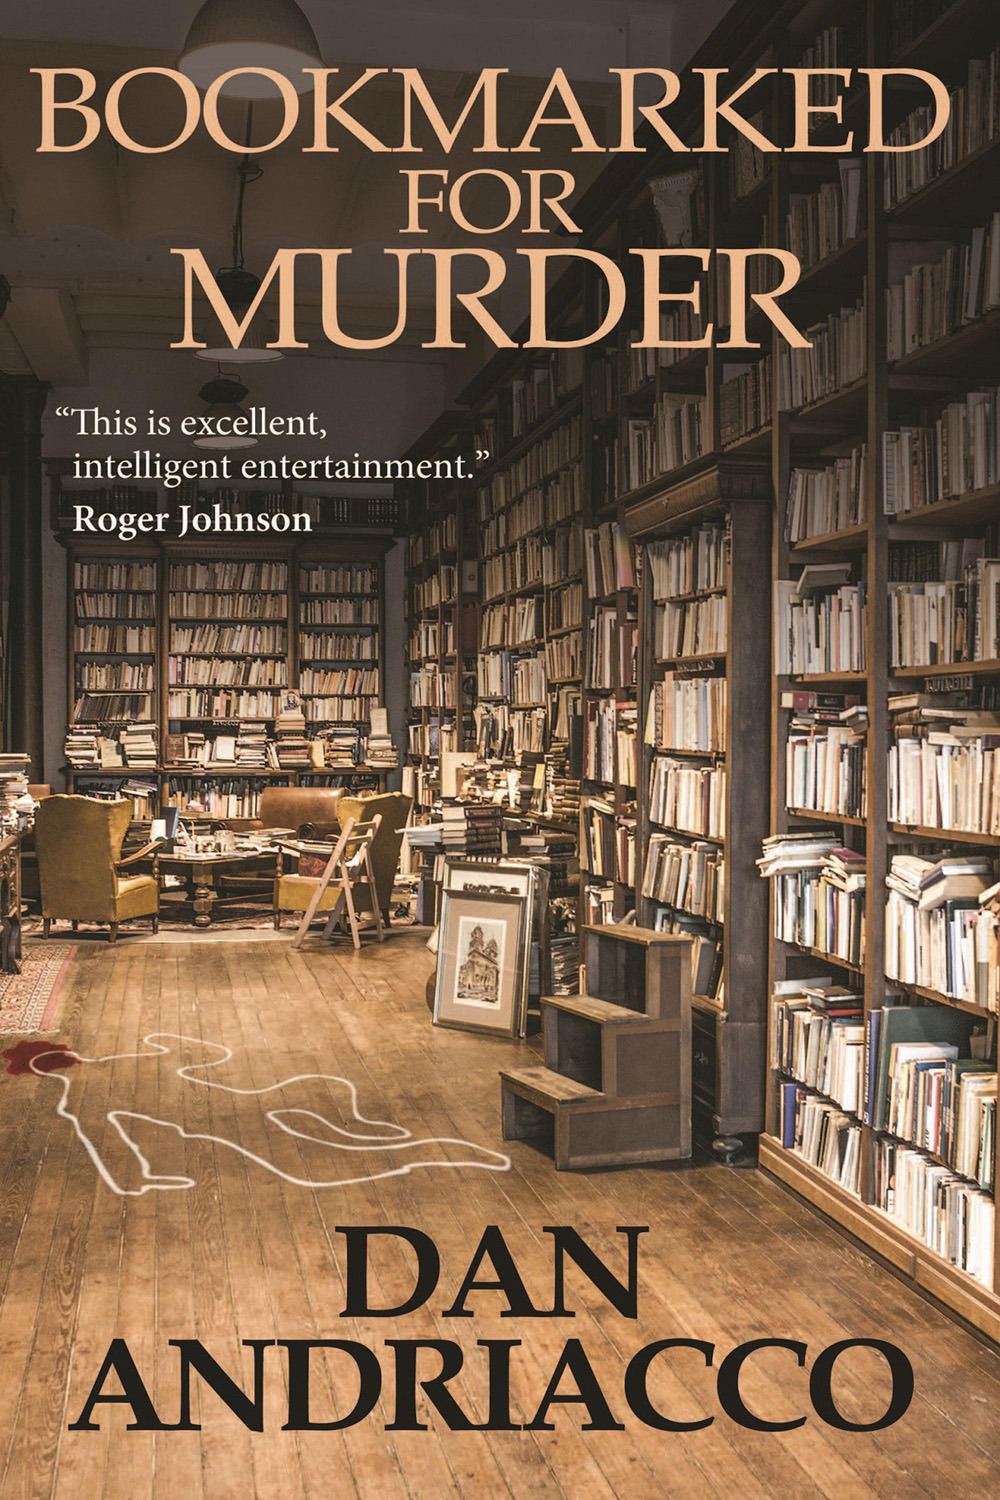 Andriacco, Dan - Bookmarked For Murder, ebook